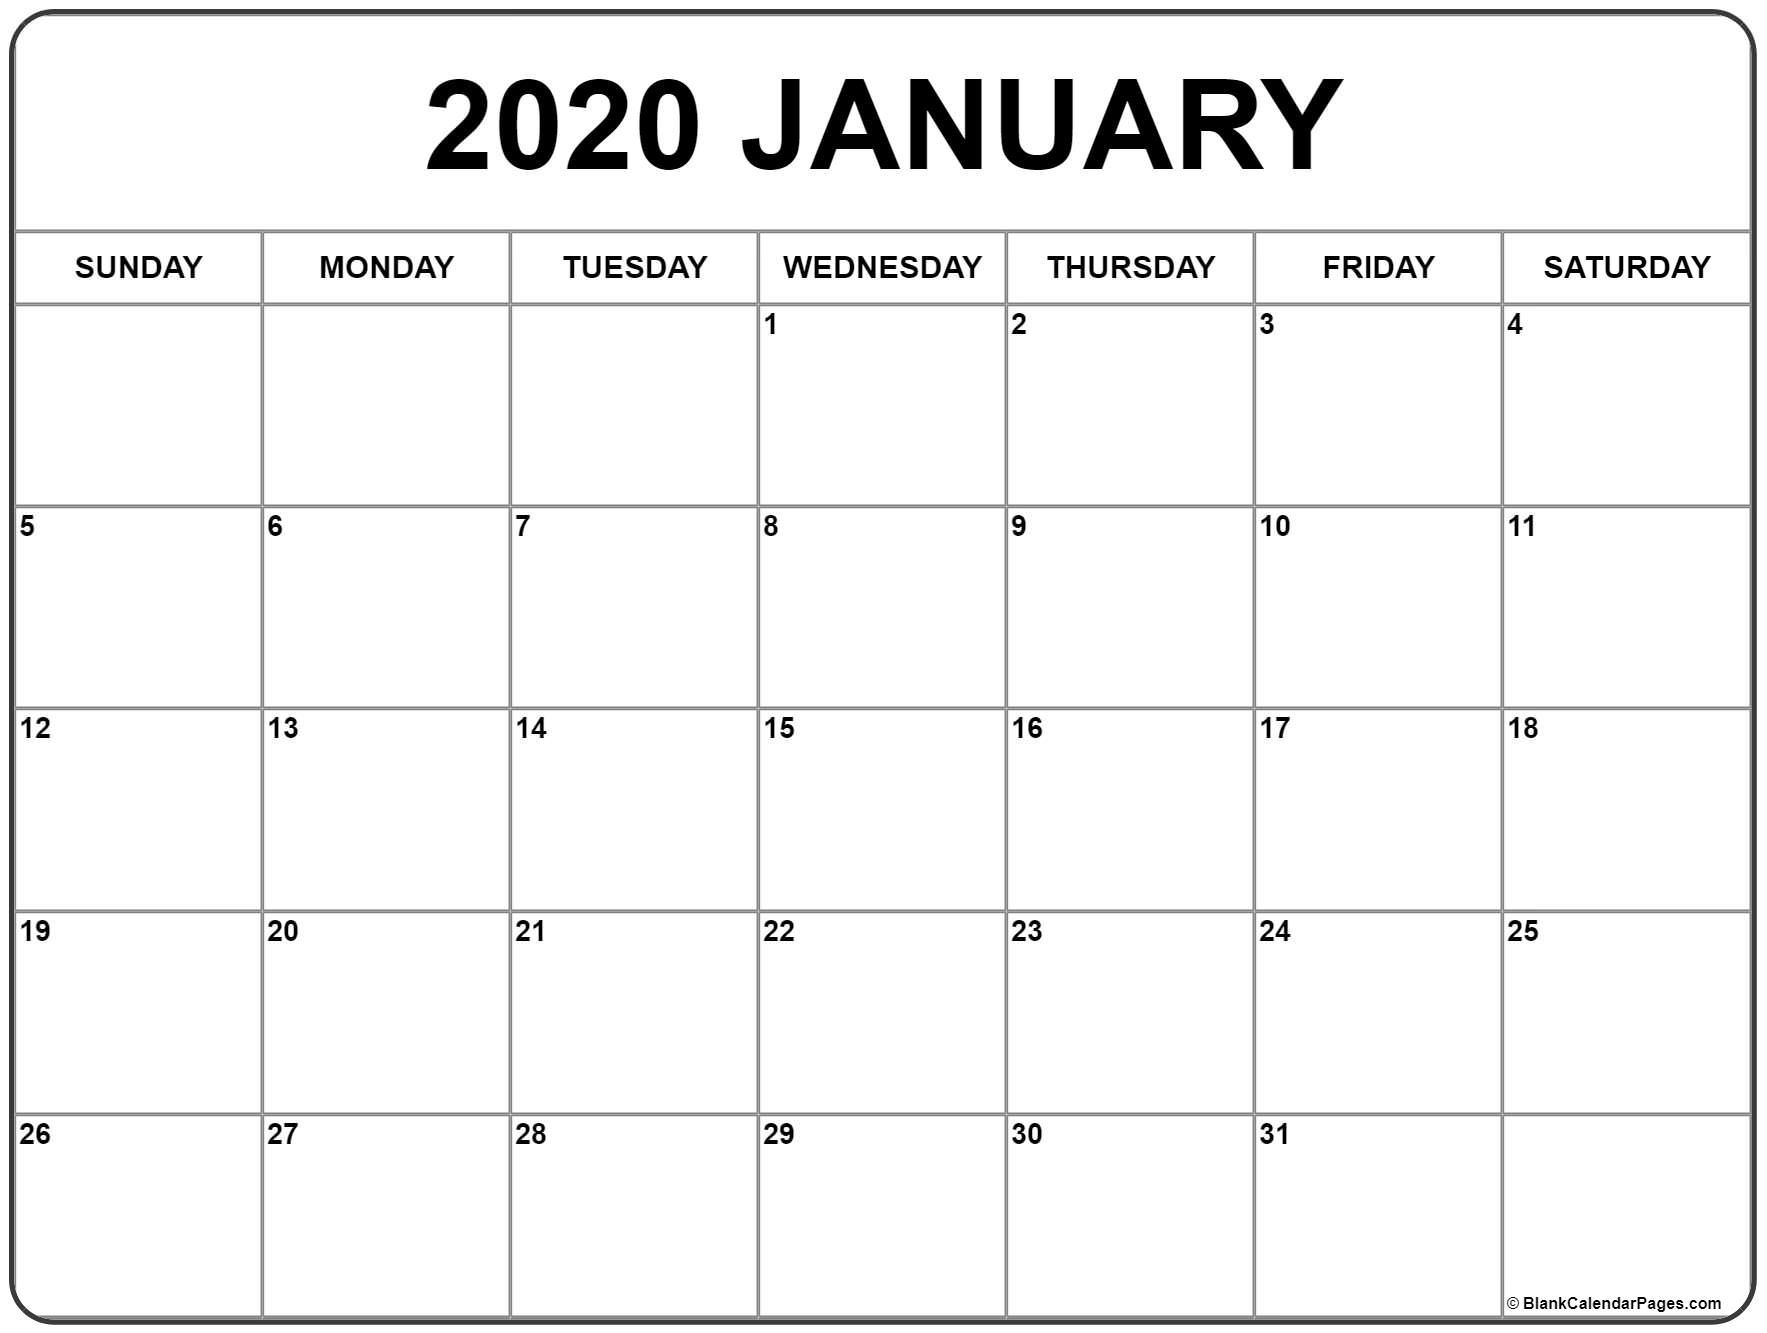 January 2020 Calendar | Free Printable Monthly Calendars within Calander January 2020